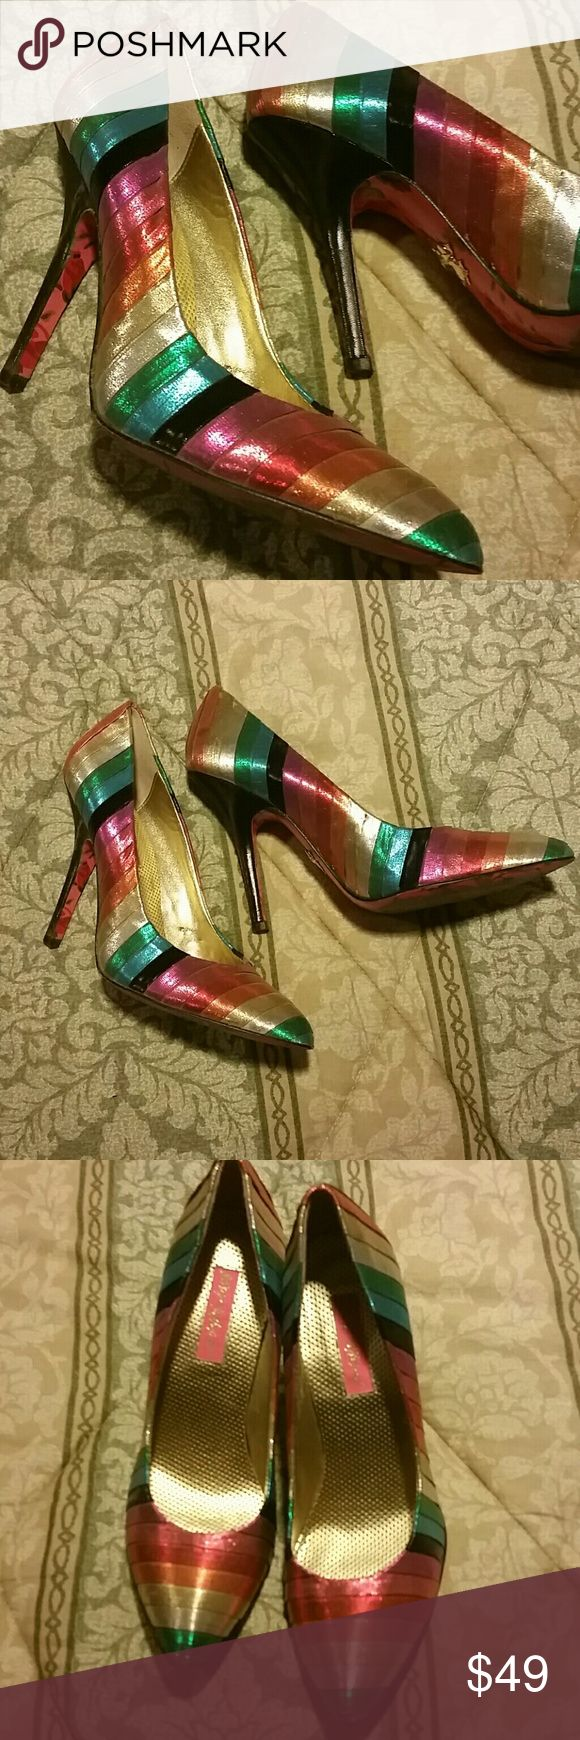 RAINBOW SPARKLE BETSEY JOHNSON PUMPS 8 Beautiful rainbow pumps by Betsey Johnson. Rainbow foil tinsel like material sparkles. Bottoms have rose design.  I had non-slip pads on the bottoms, but took them off. These were worn twice and purchased at an actual BJ store. They cost close to $250.  I love them, but they're not todder friendly :( Betsey Johnson Shoes Heels